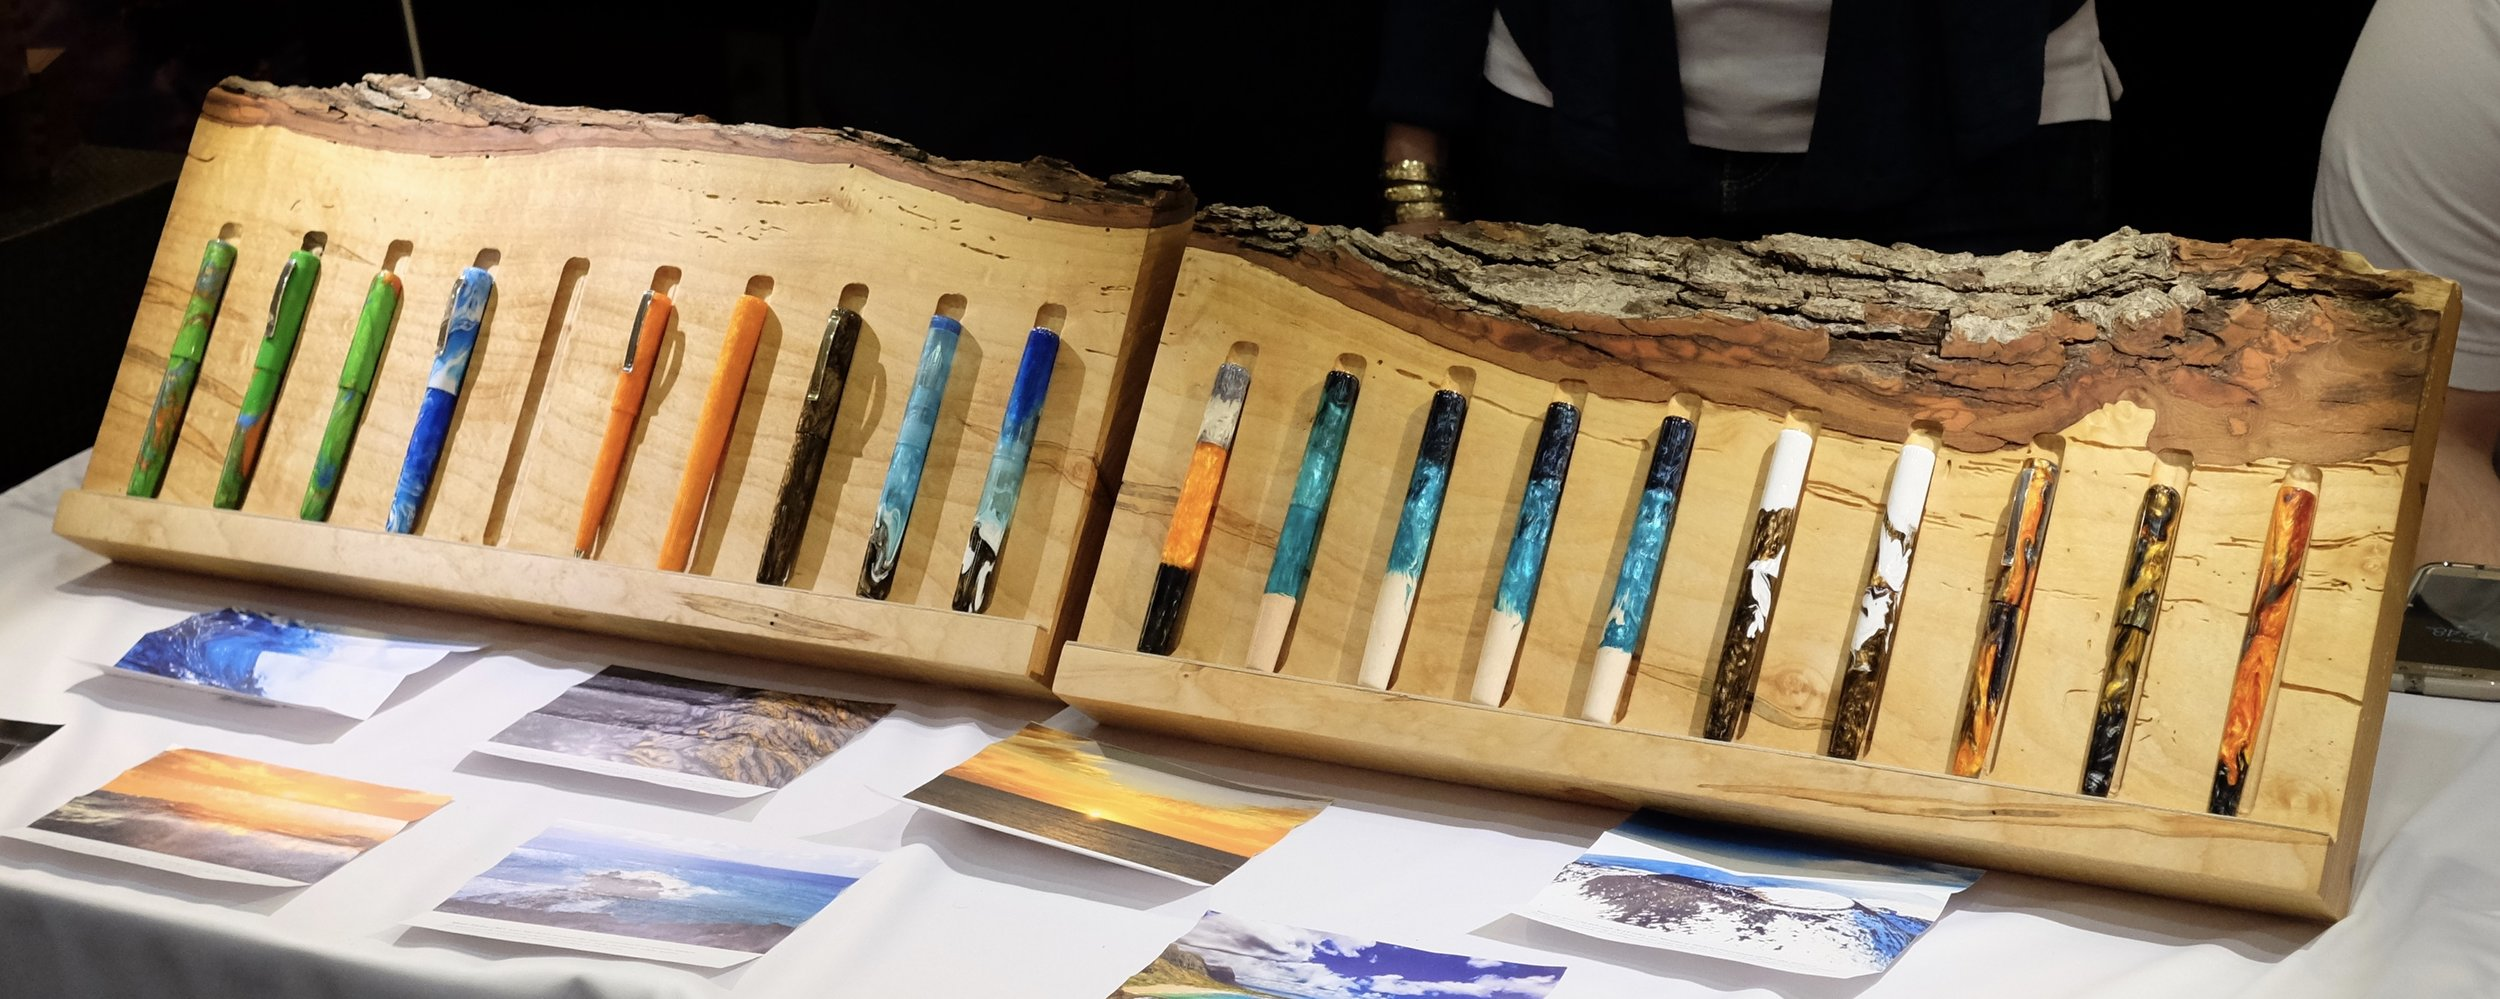 The selection of Kanilea pens available at the Baltimore Pen Show, to hold and test out. (Less one Mauna Kea...)